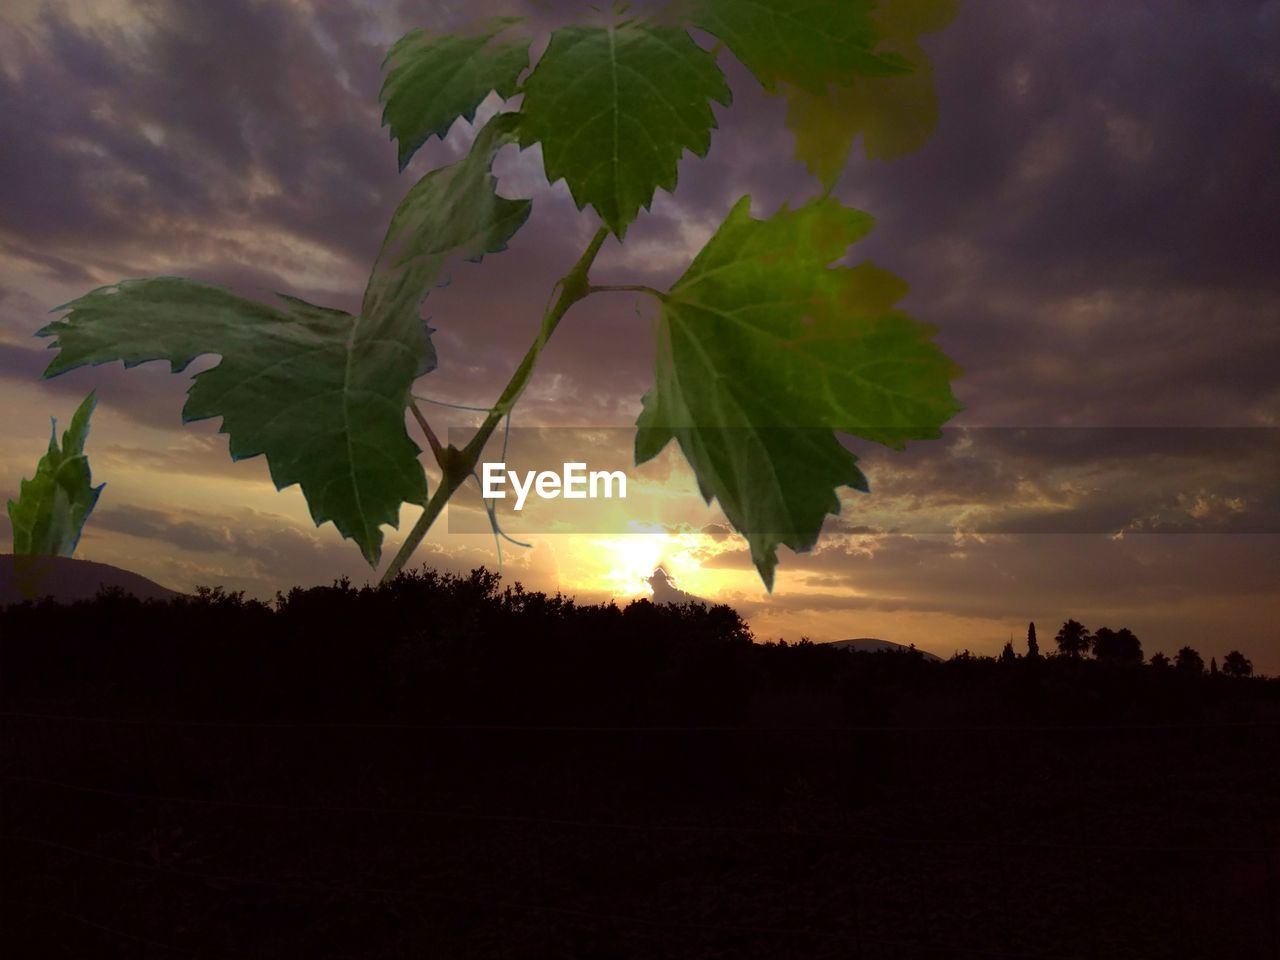 sky, cloud - sky, sunset, beauty in nature, plant, silhouette, nature, tranquility, growth, tranquil scene, scenics - nature, no people, tree, field, land, leaf, plant part, environment, landscape, outdoors